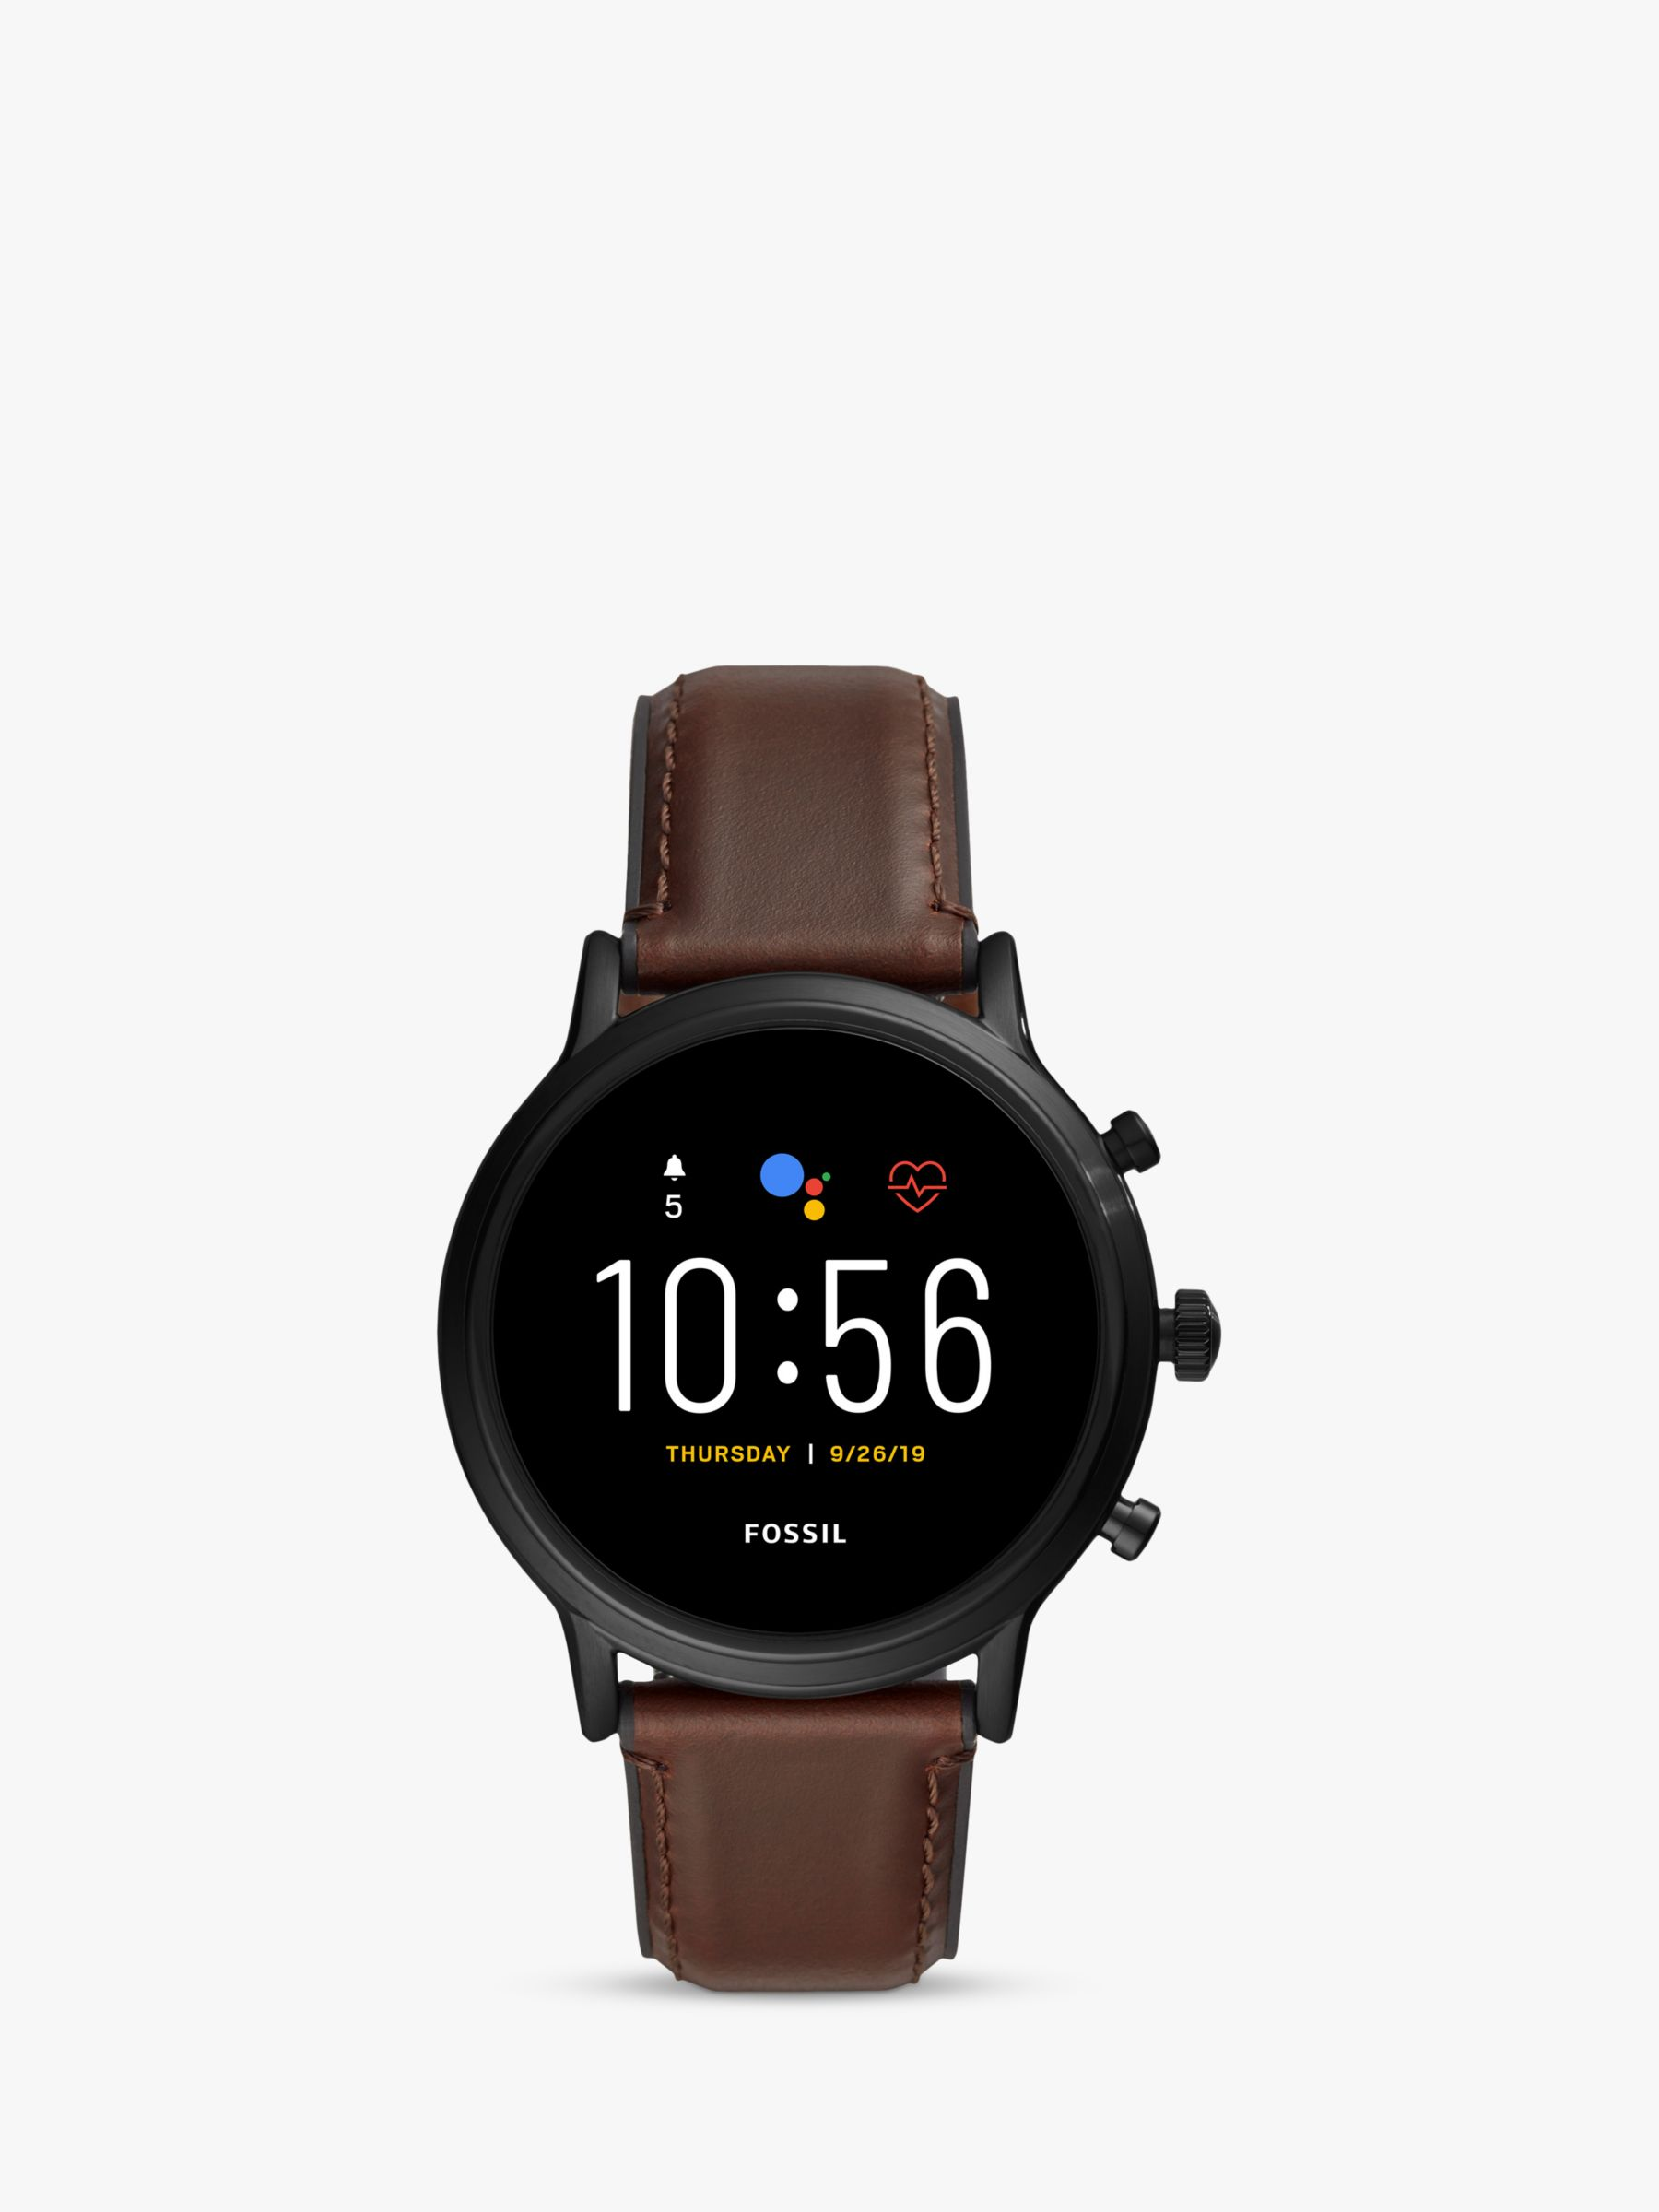 Fossil Fossil Q FTW4026 Men's Leather Strap Touch Screen Smartwatch, Brown/Black